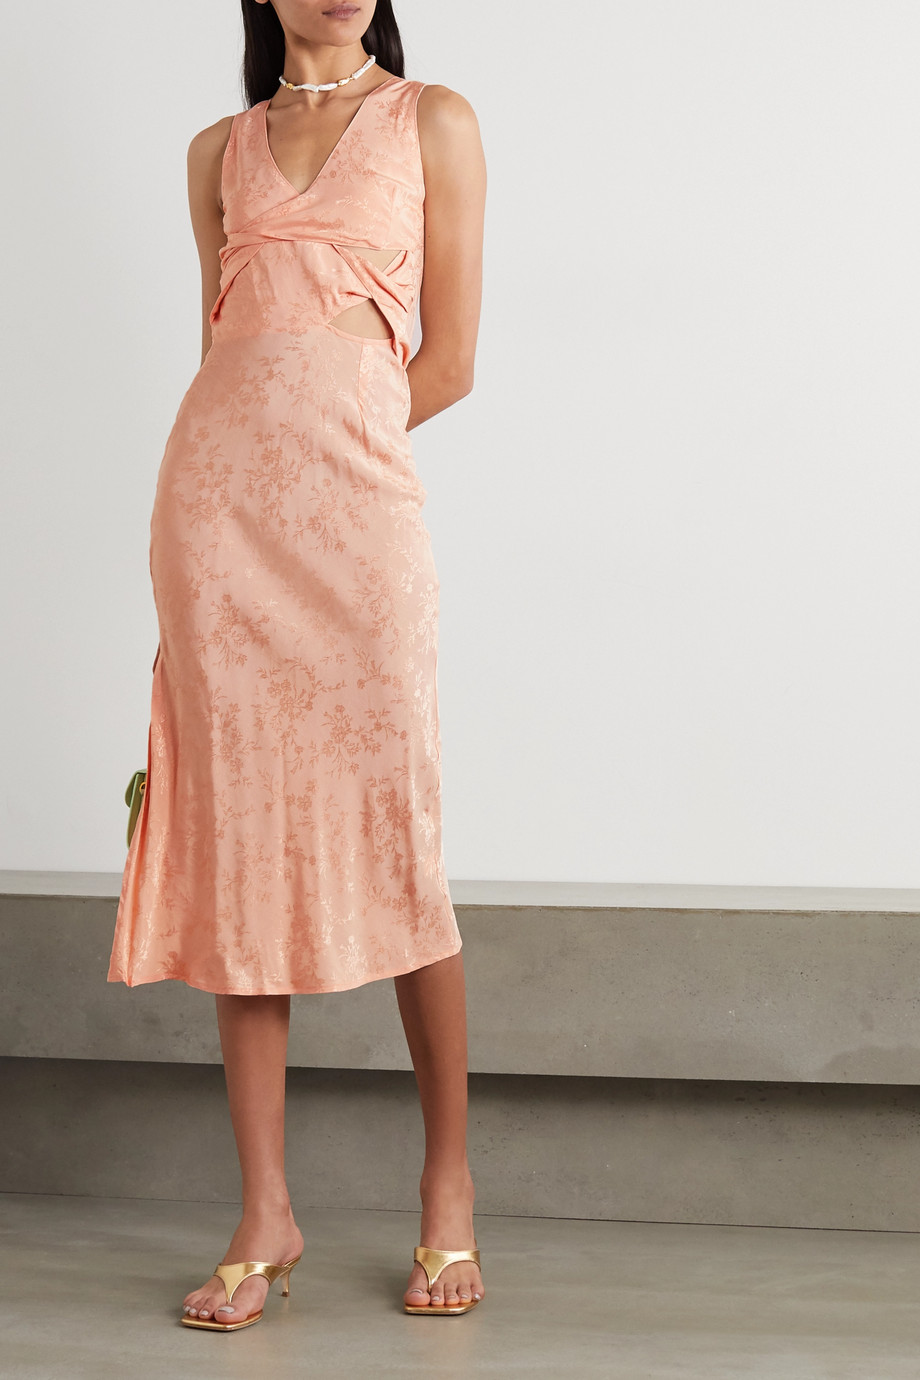 THE LINE BY K Moon twist-front cutout floral-jacquard midi dress